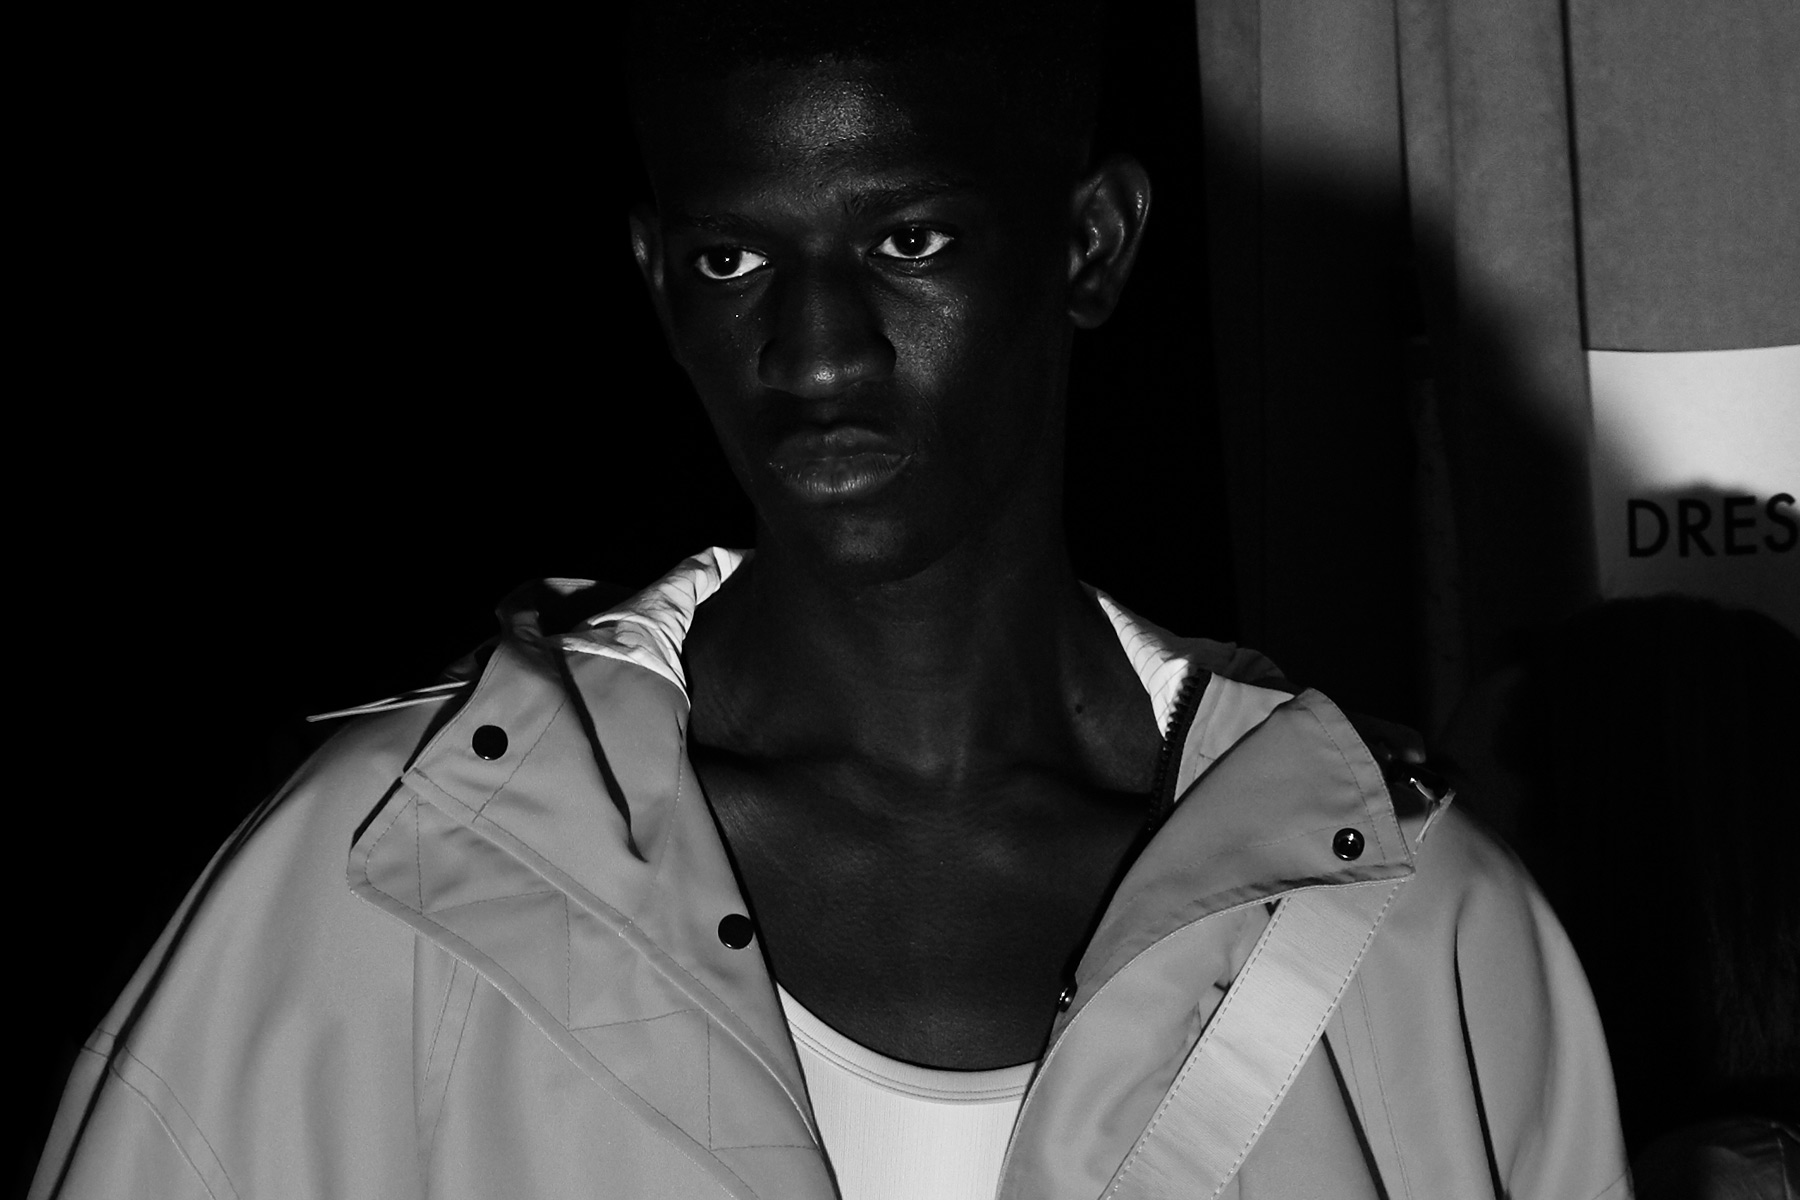 Model Ibby Sow snapped backstage at Feng Chen Wang for Spring 2019. Photography by Alexander Thompson for Ponyboy magazine.